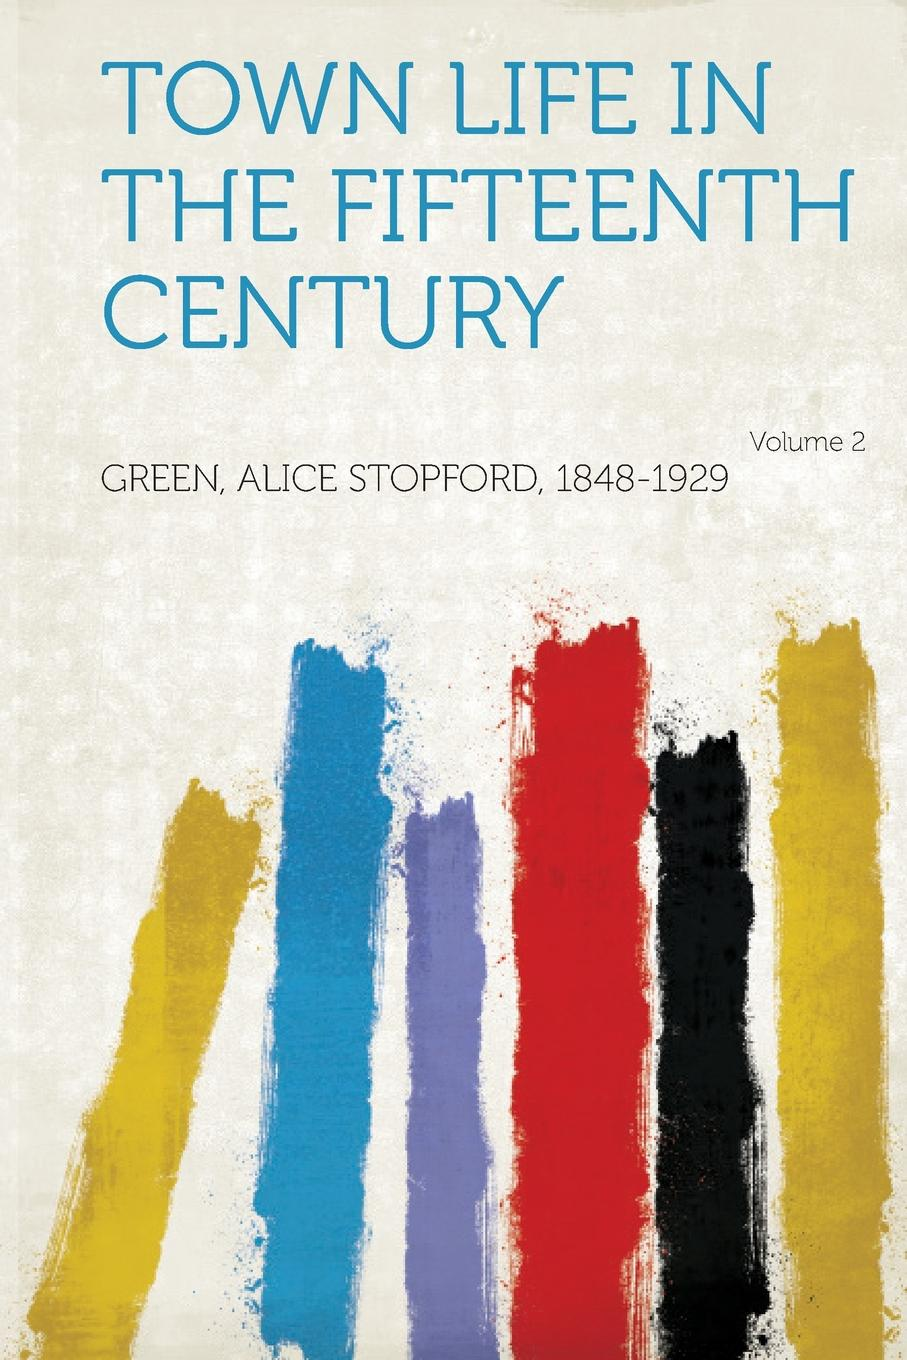 Town Life in the Fifteenth Century Volume 2 green alice stopford town life in the fifteenth century volume 2